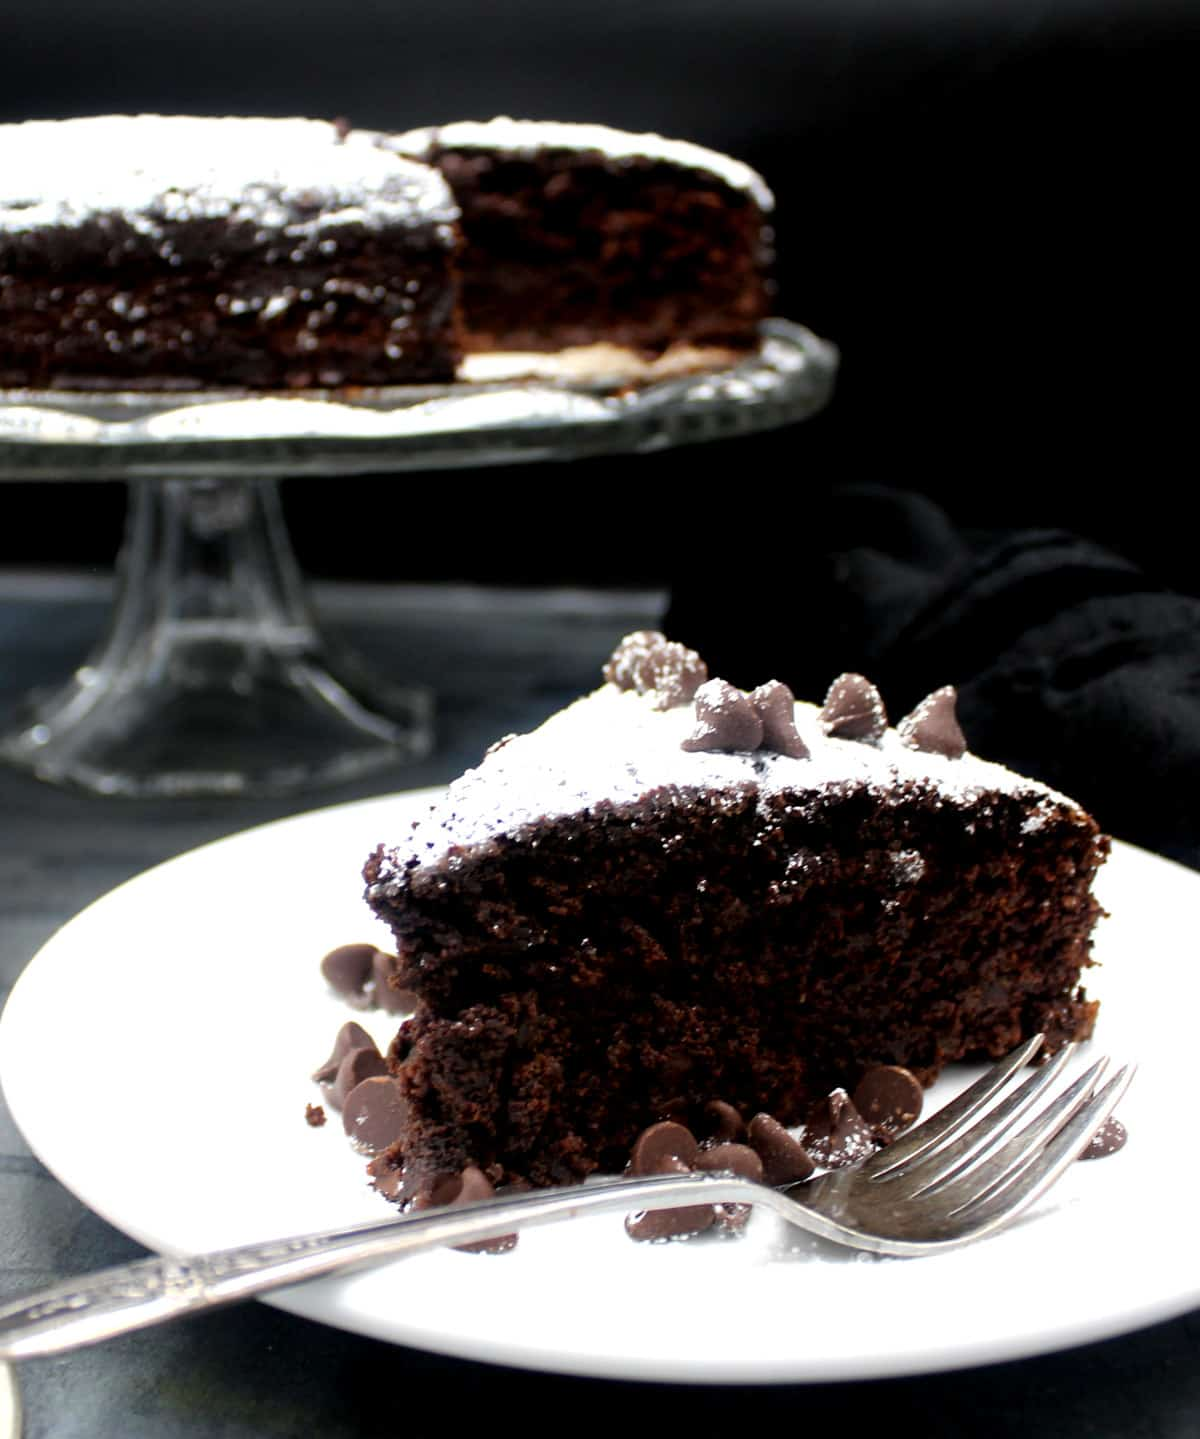 A slice of Irish chocolate whiskey cake on a plate with chocolate chips and a fork with the full cake in background on a glass cake stand.